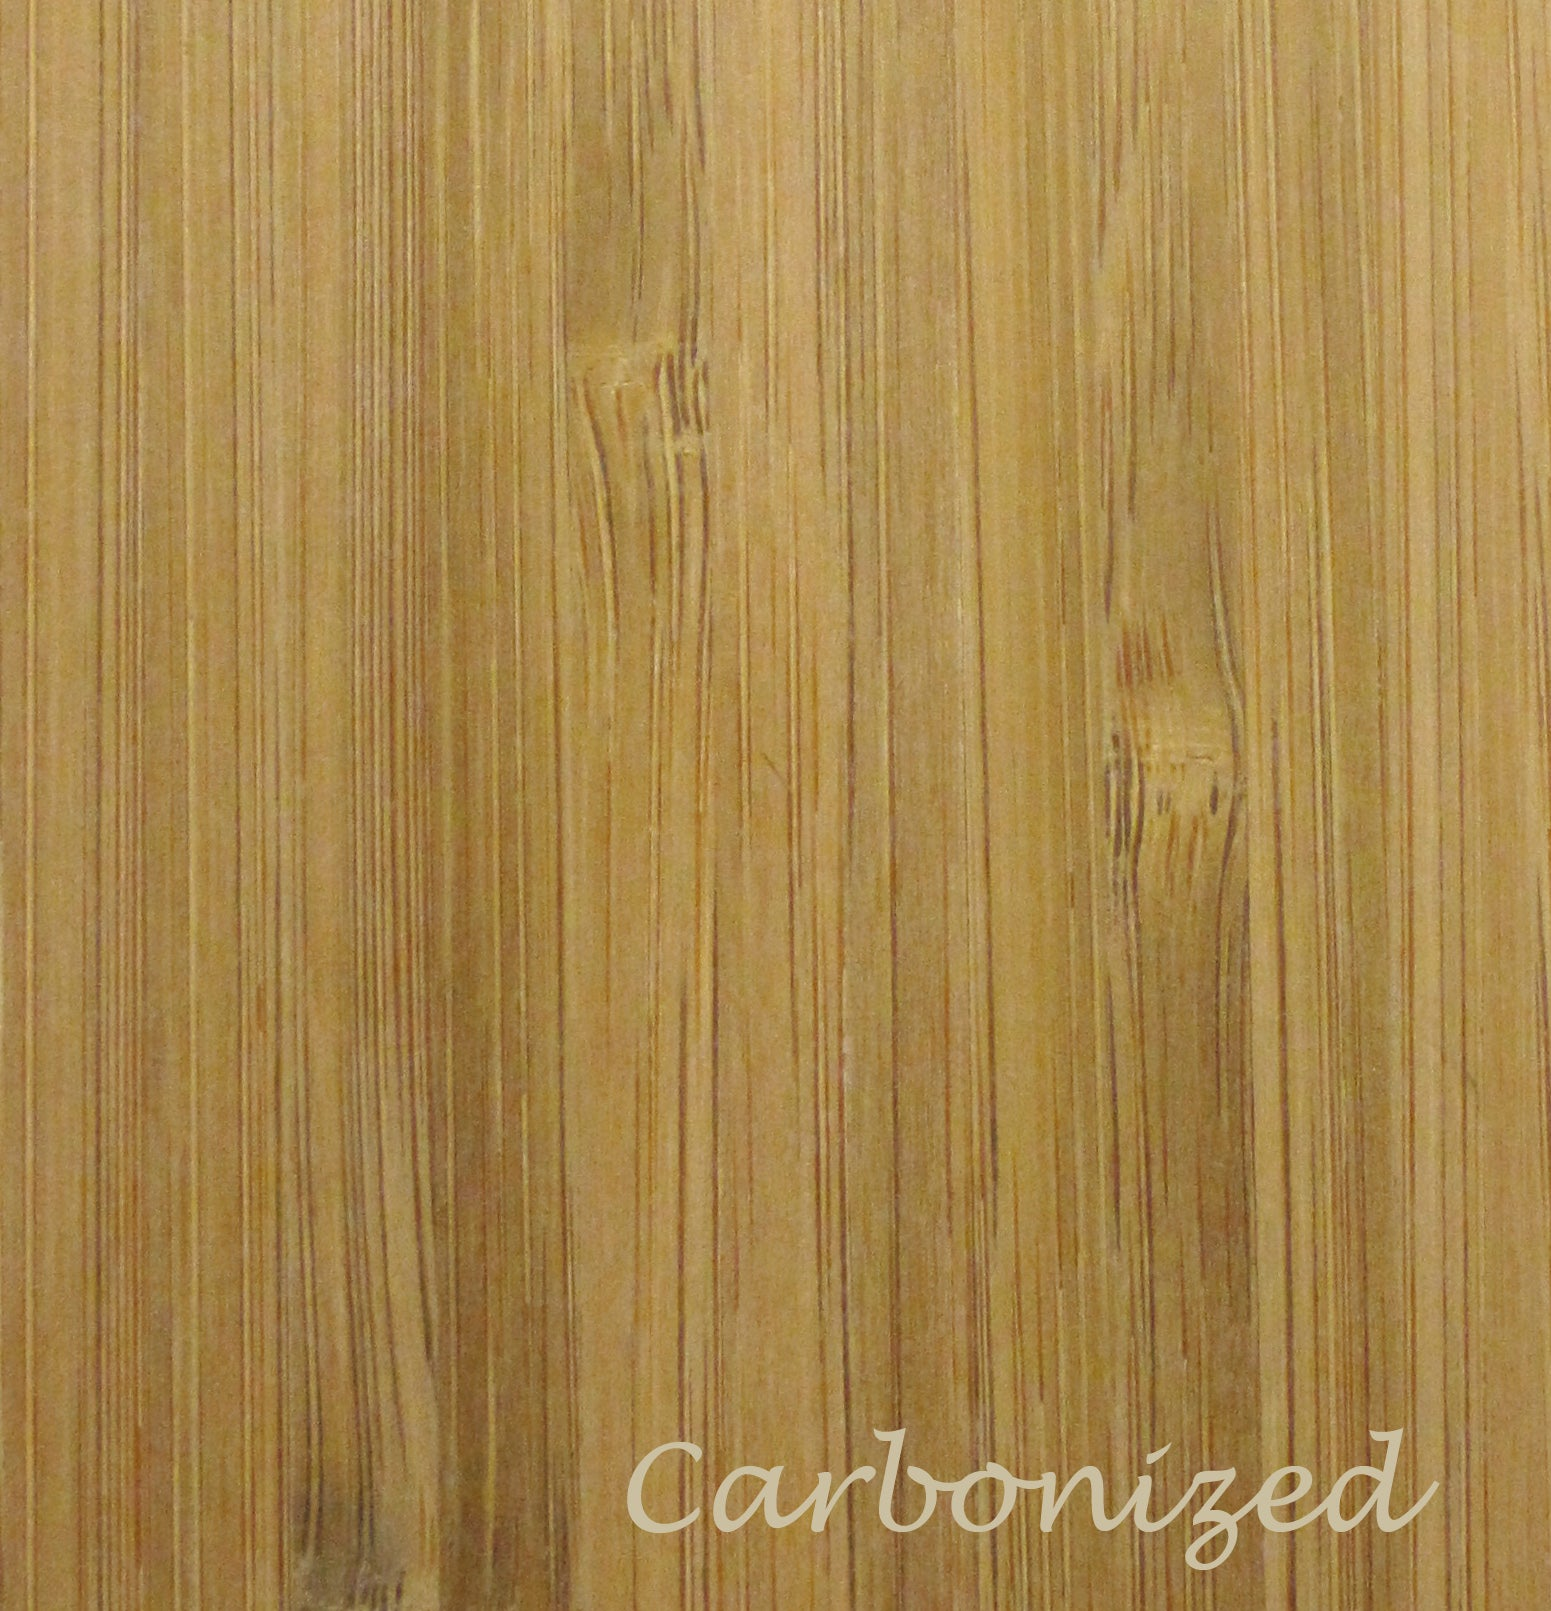 Grassracks carbonized bamboo